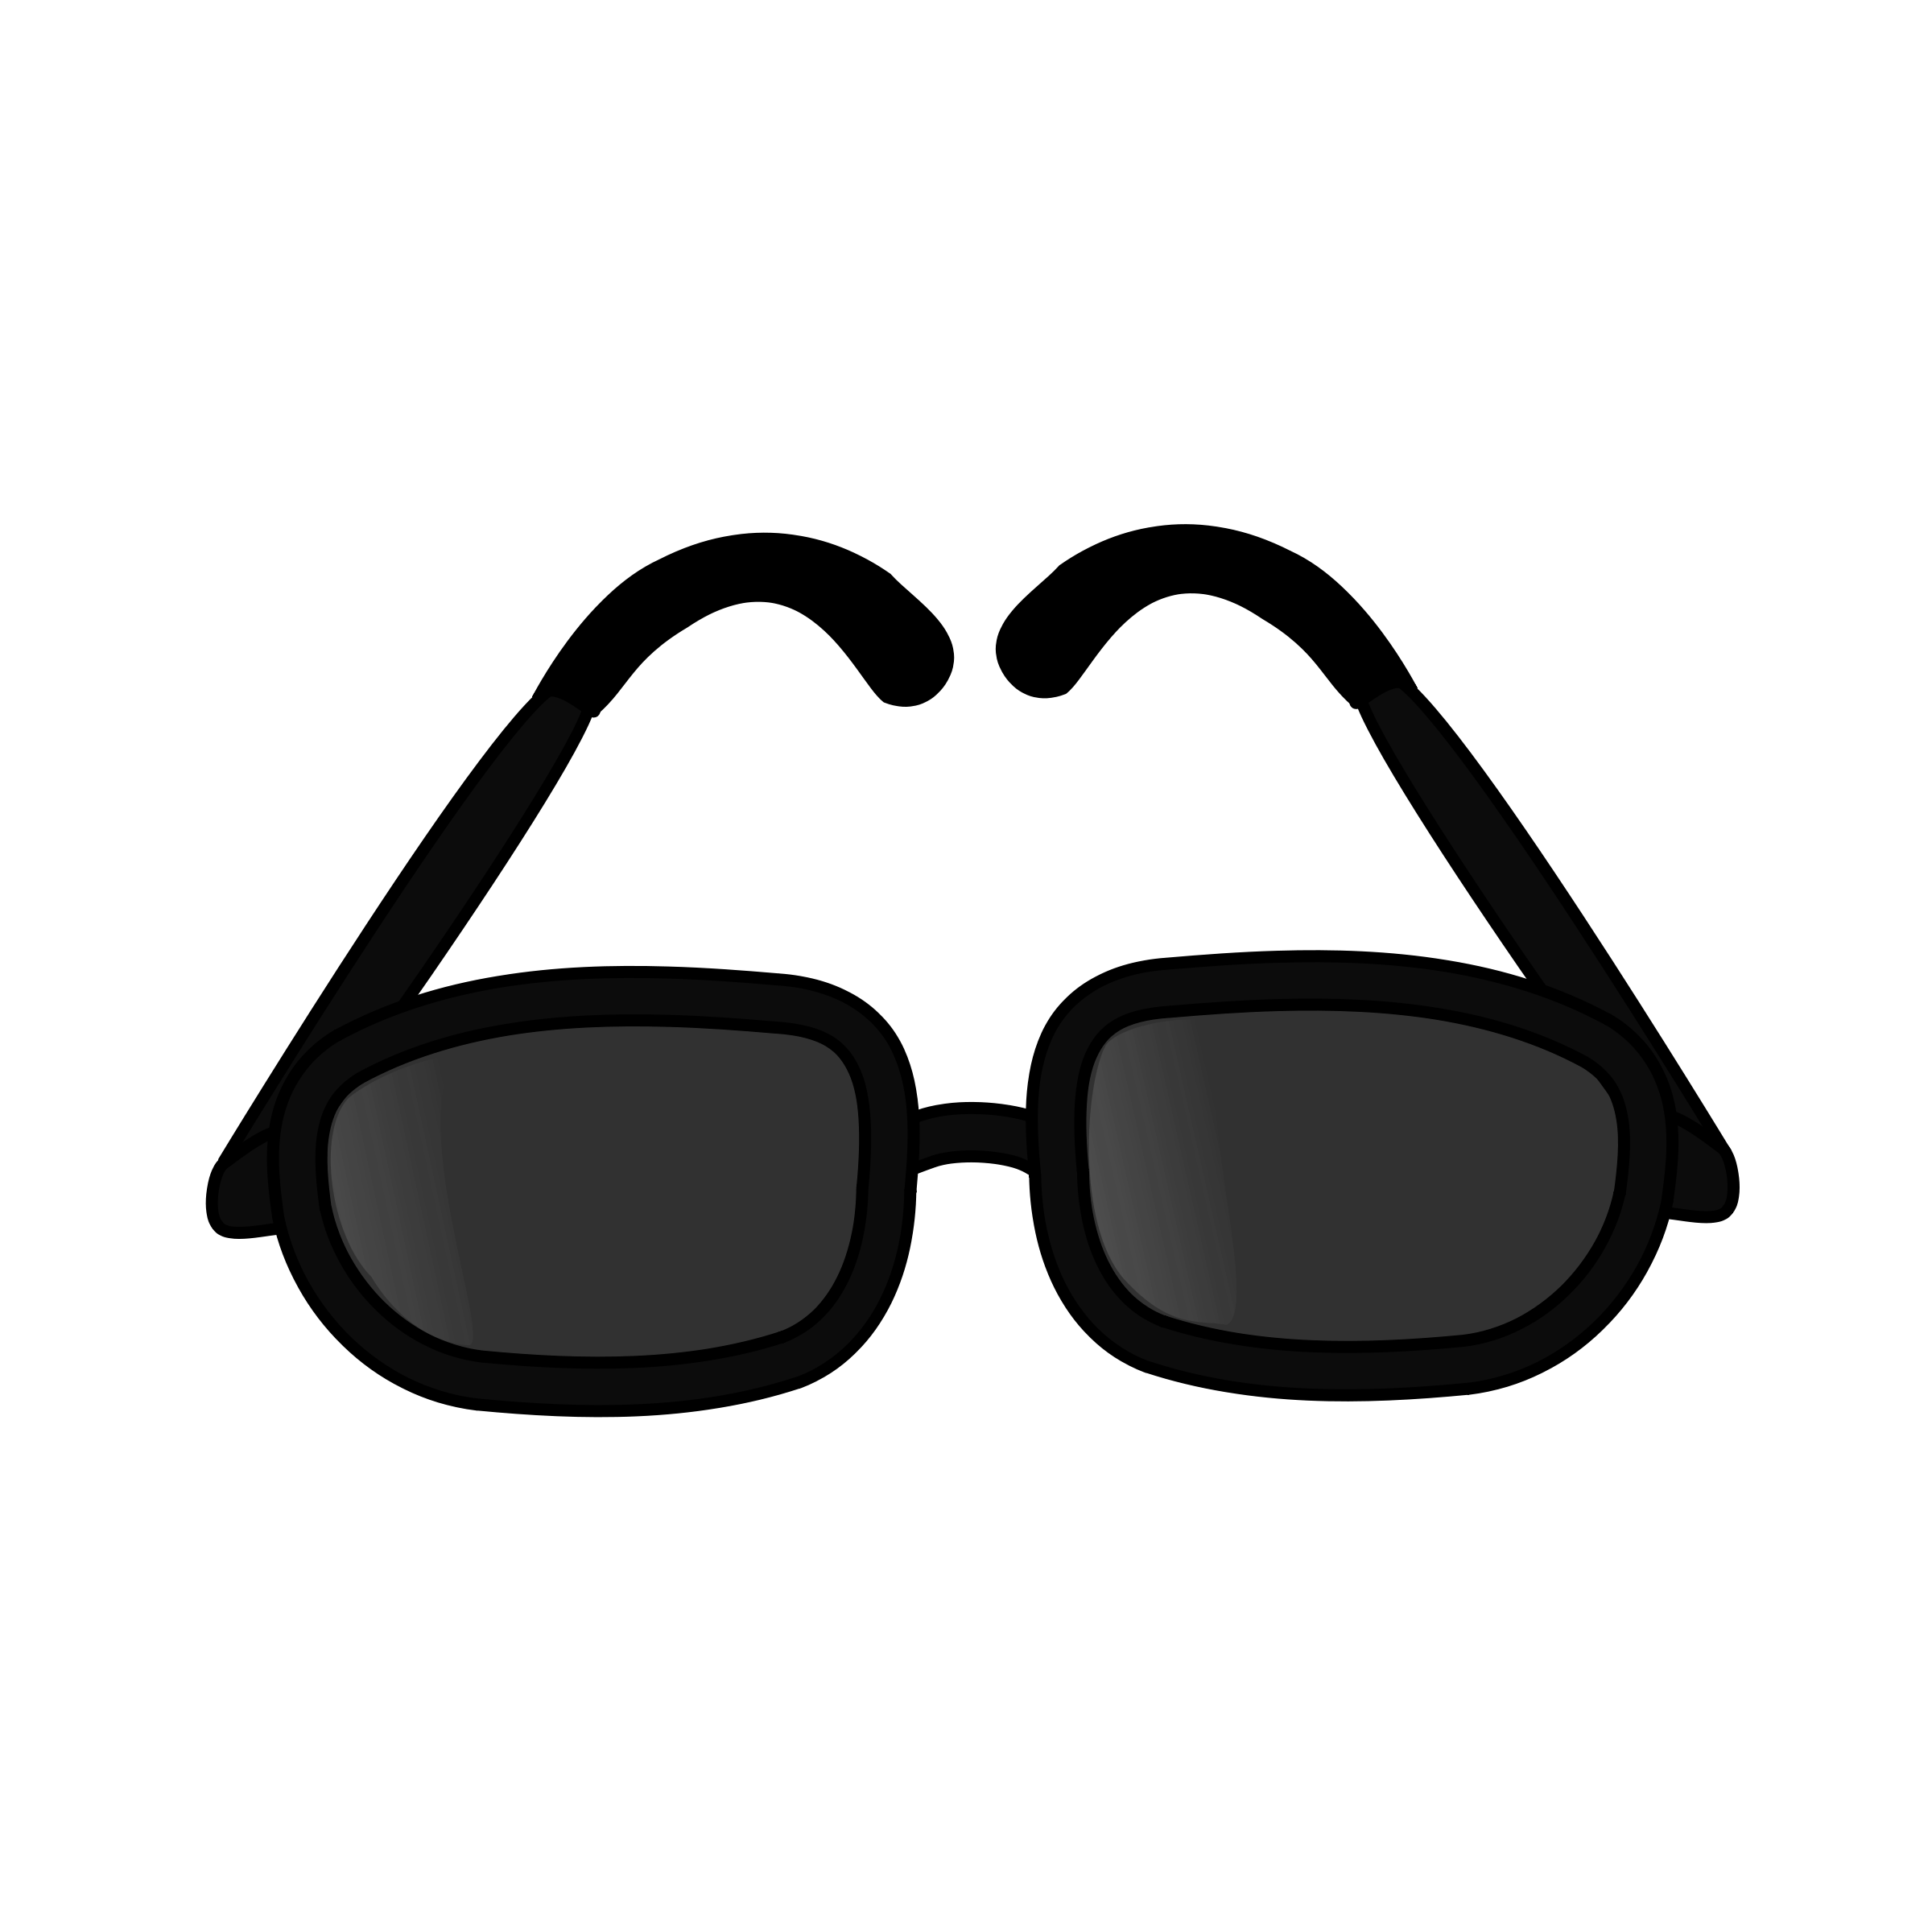 Black sunglasses clipart 2 » Clipart Station.